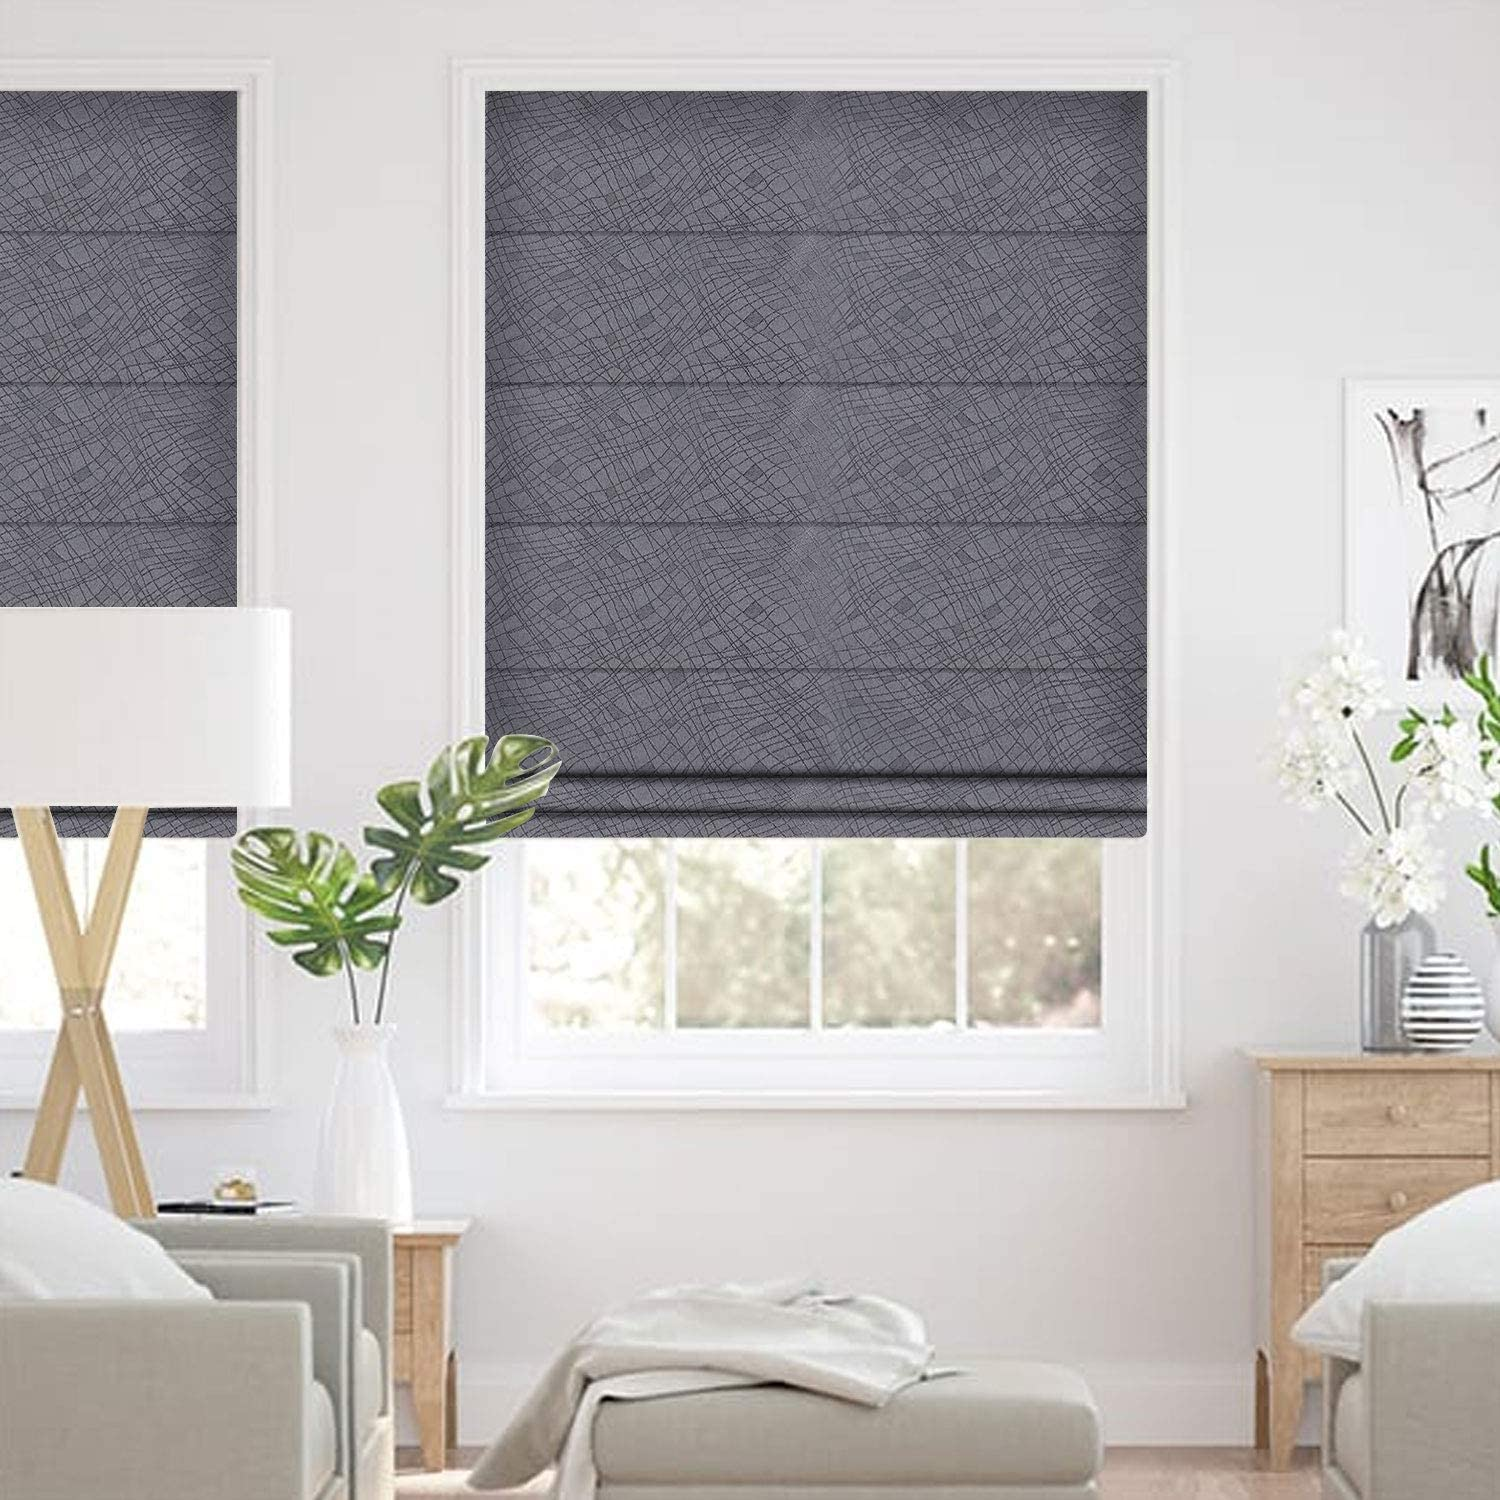 Amazon Com Allbright Striped Jacquard Thermal Insulated Uv Protection Blackout Roman Shades For Windows 23 X 83 Inches Dark Grey Clove Home Kitchen